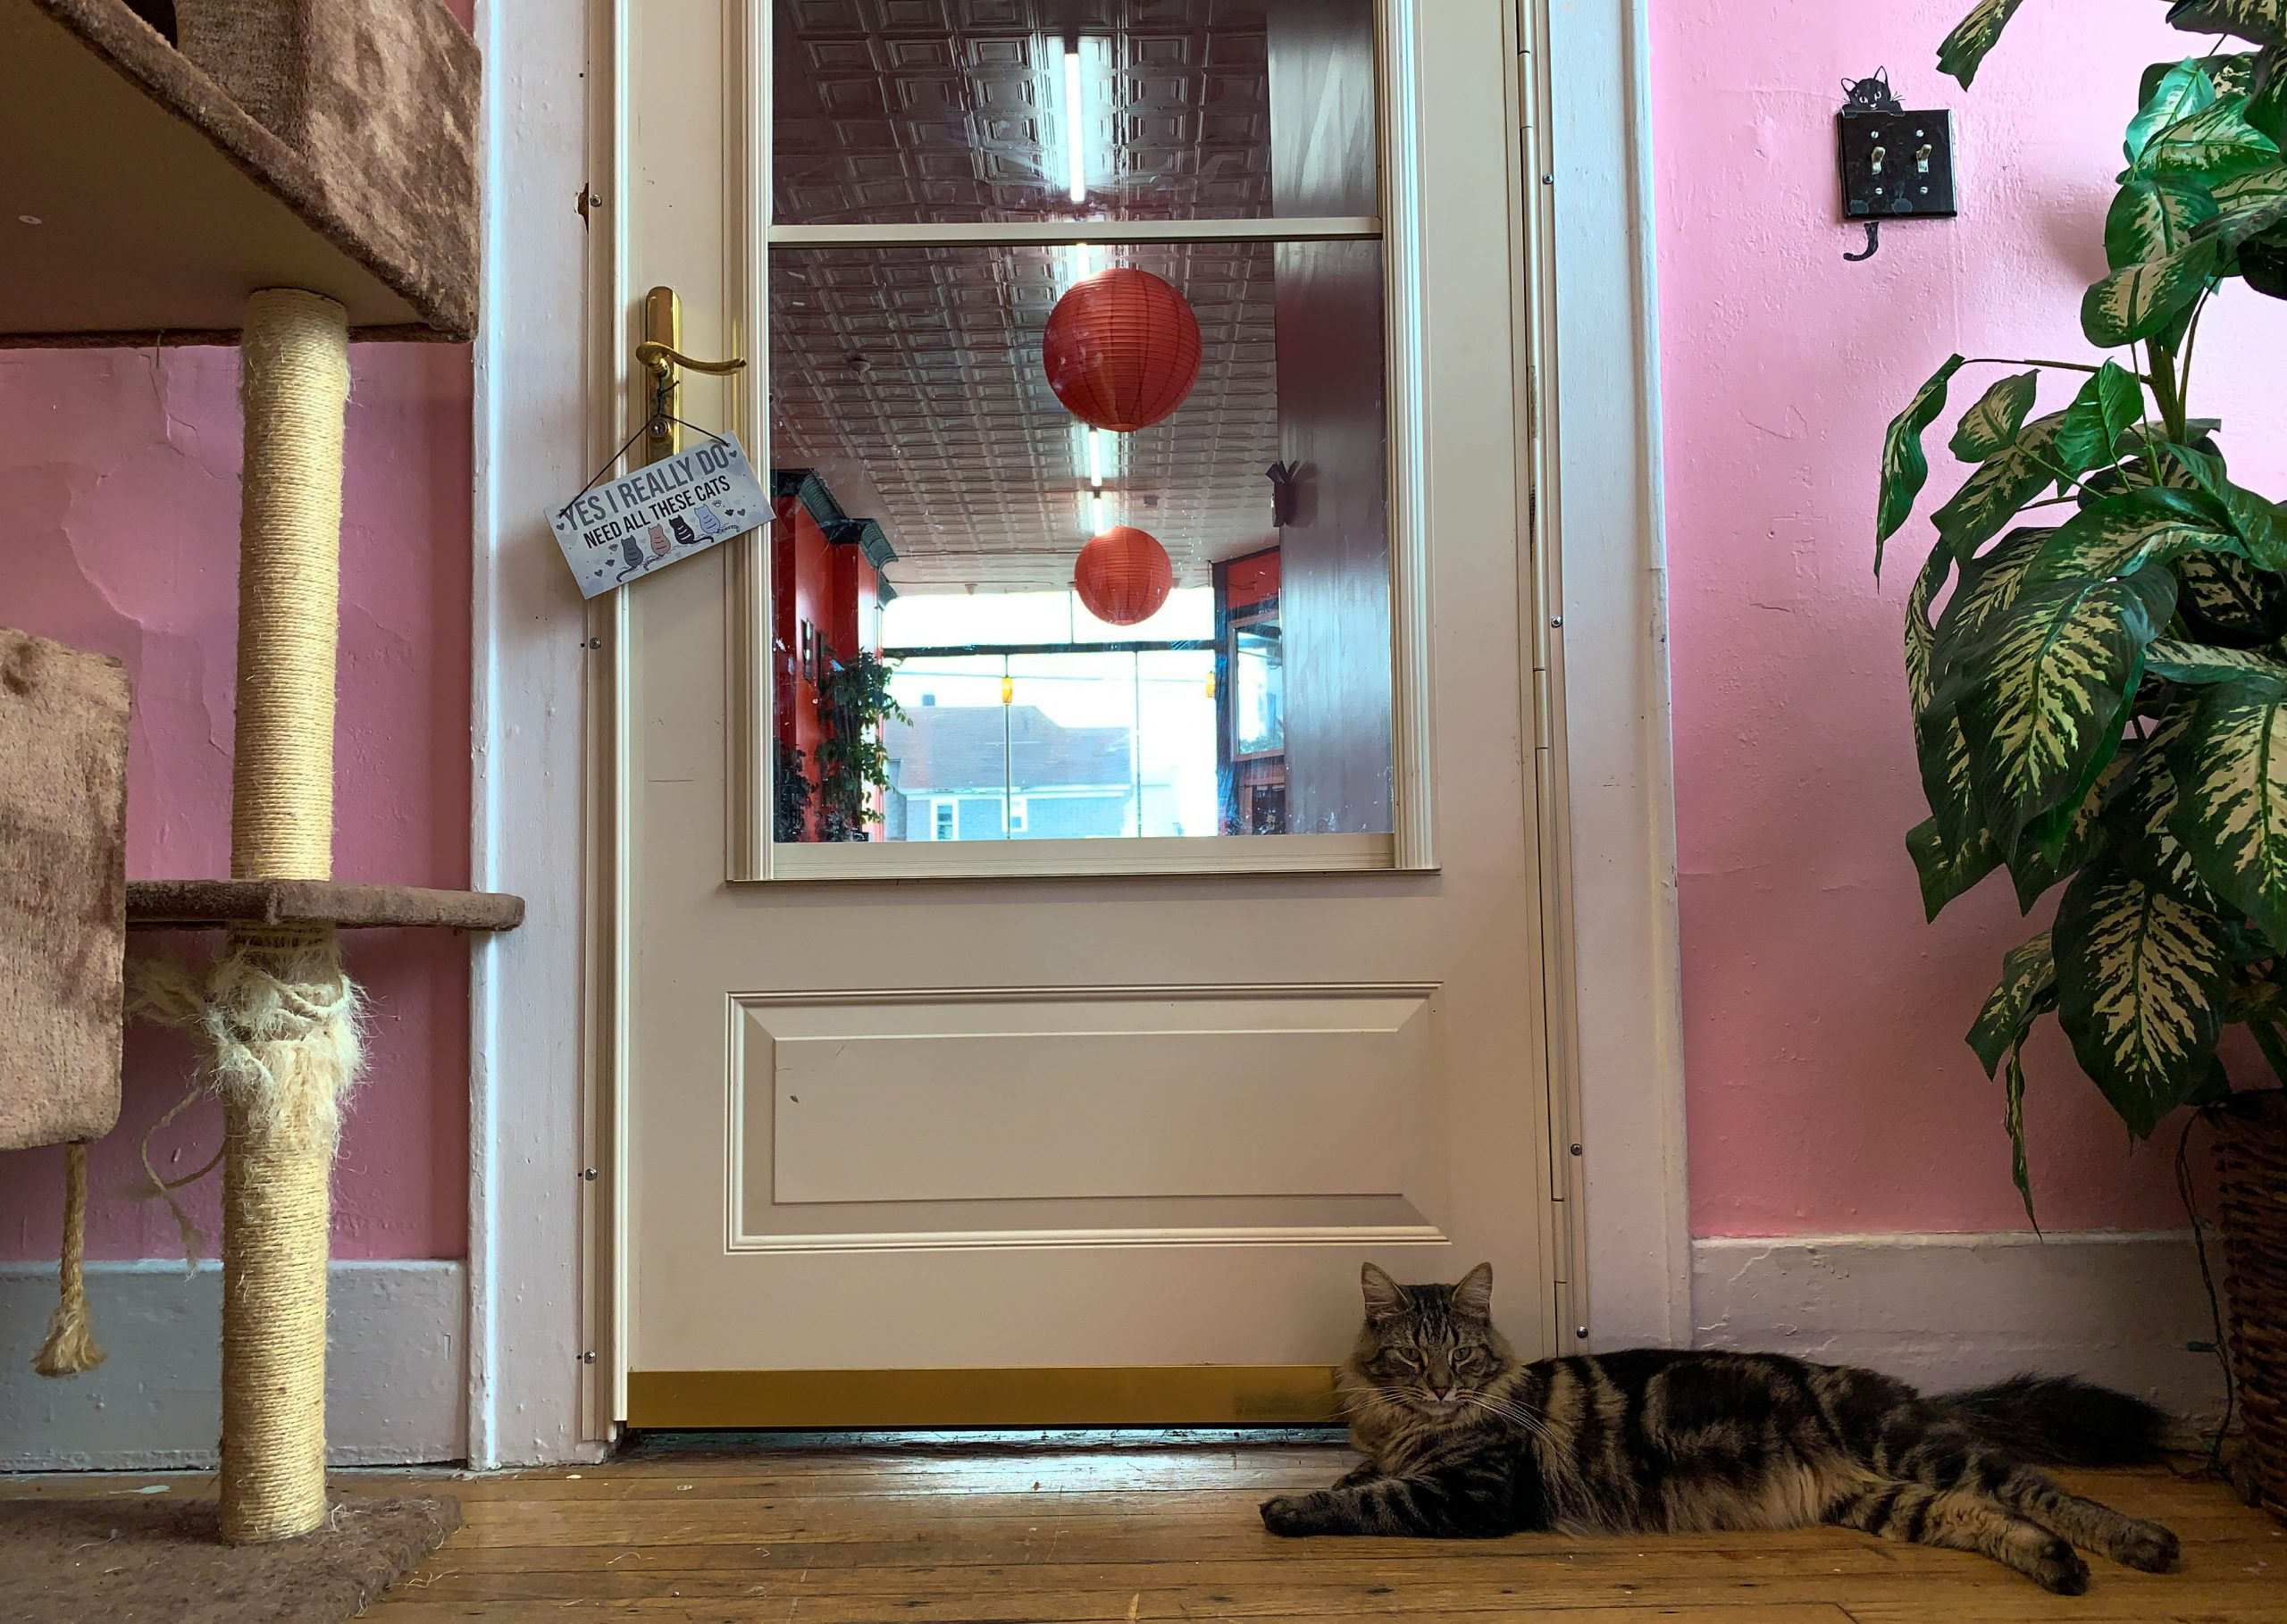 Visitors can enter the cat lounge directly from the dining room.